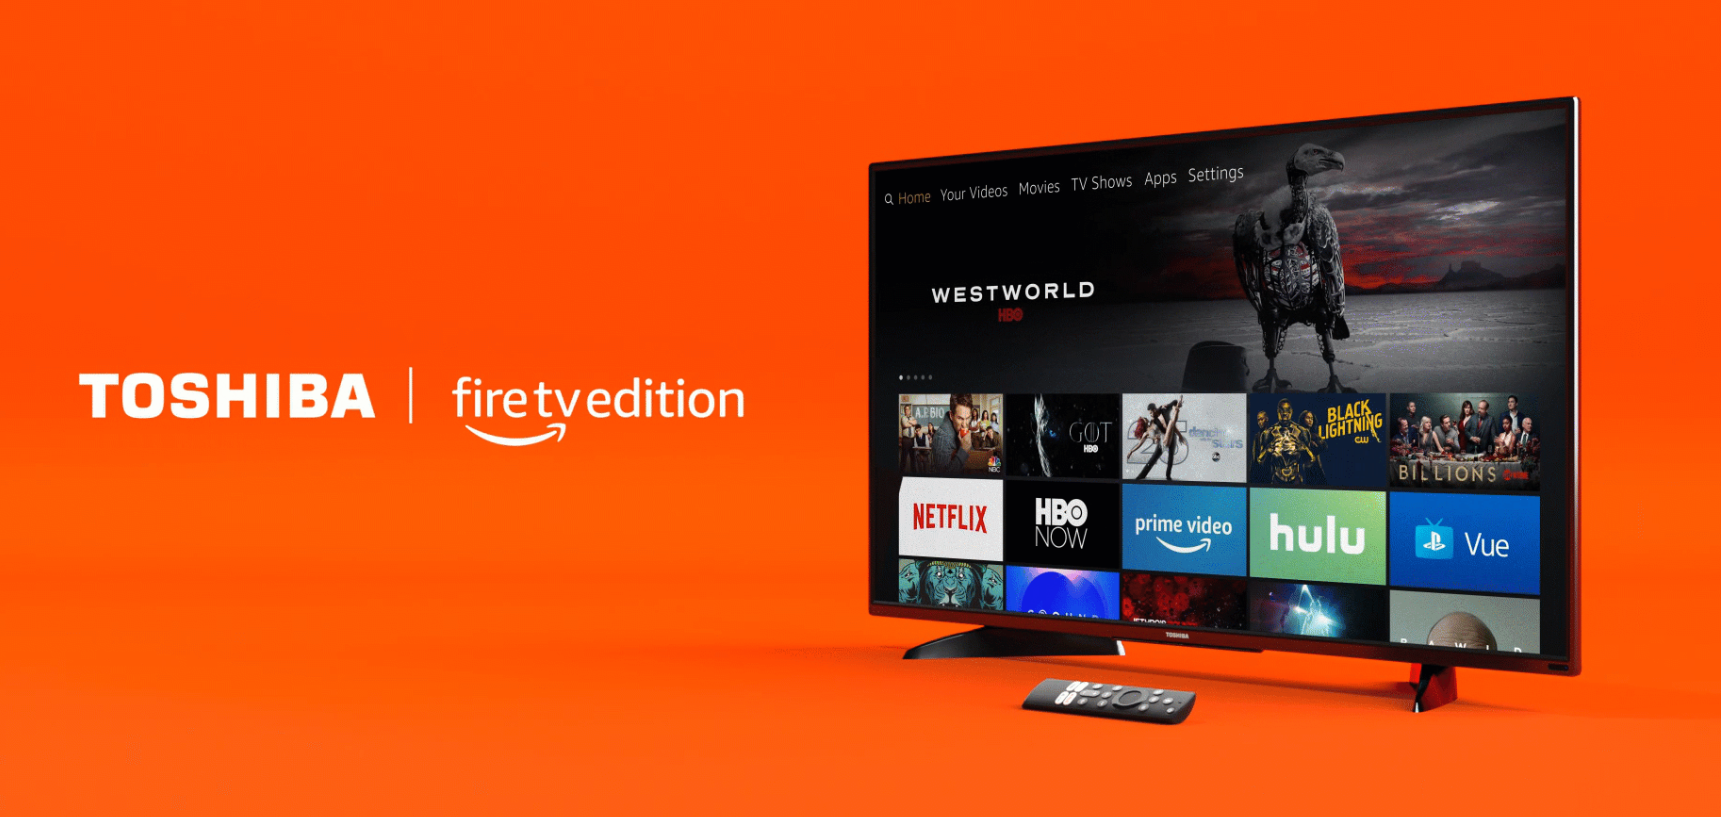 Now Shipping: Toshiba 4K Ultra HD - Fire TV Edition, a New